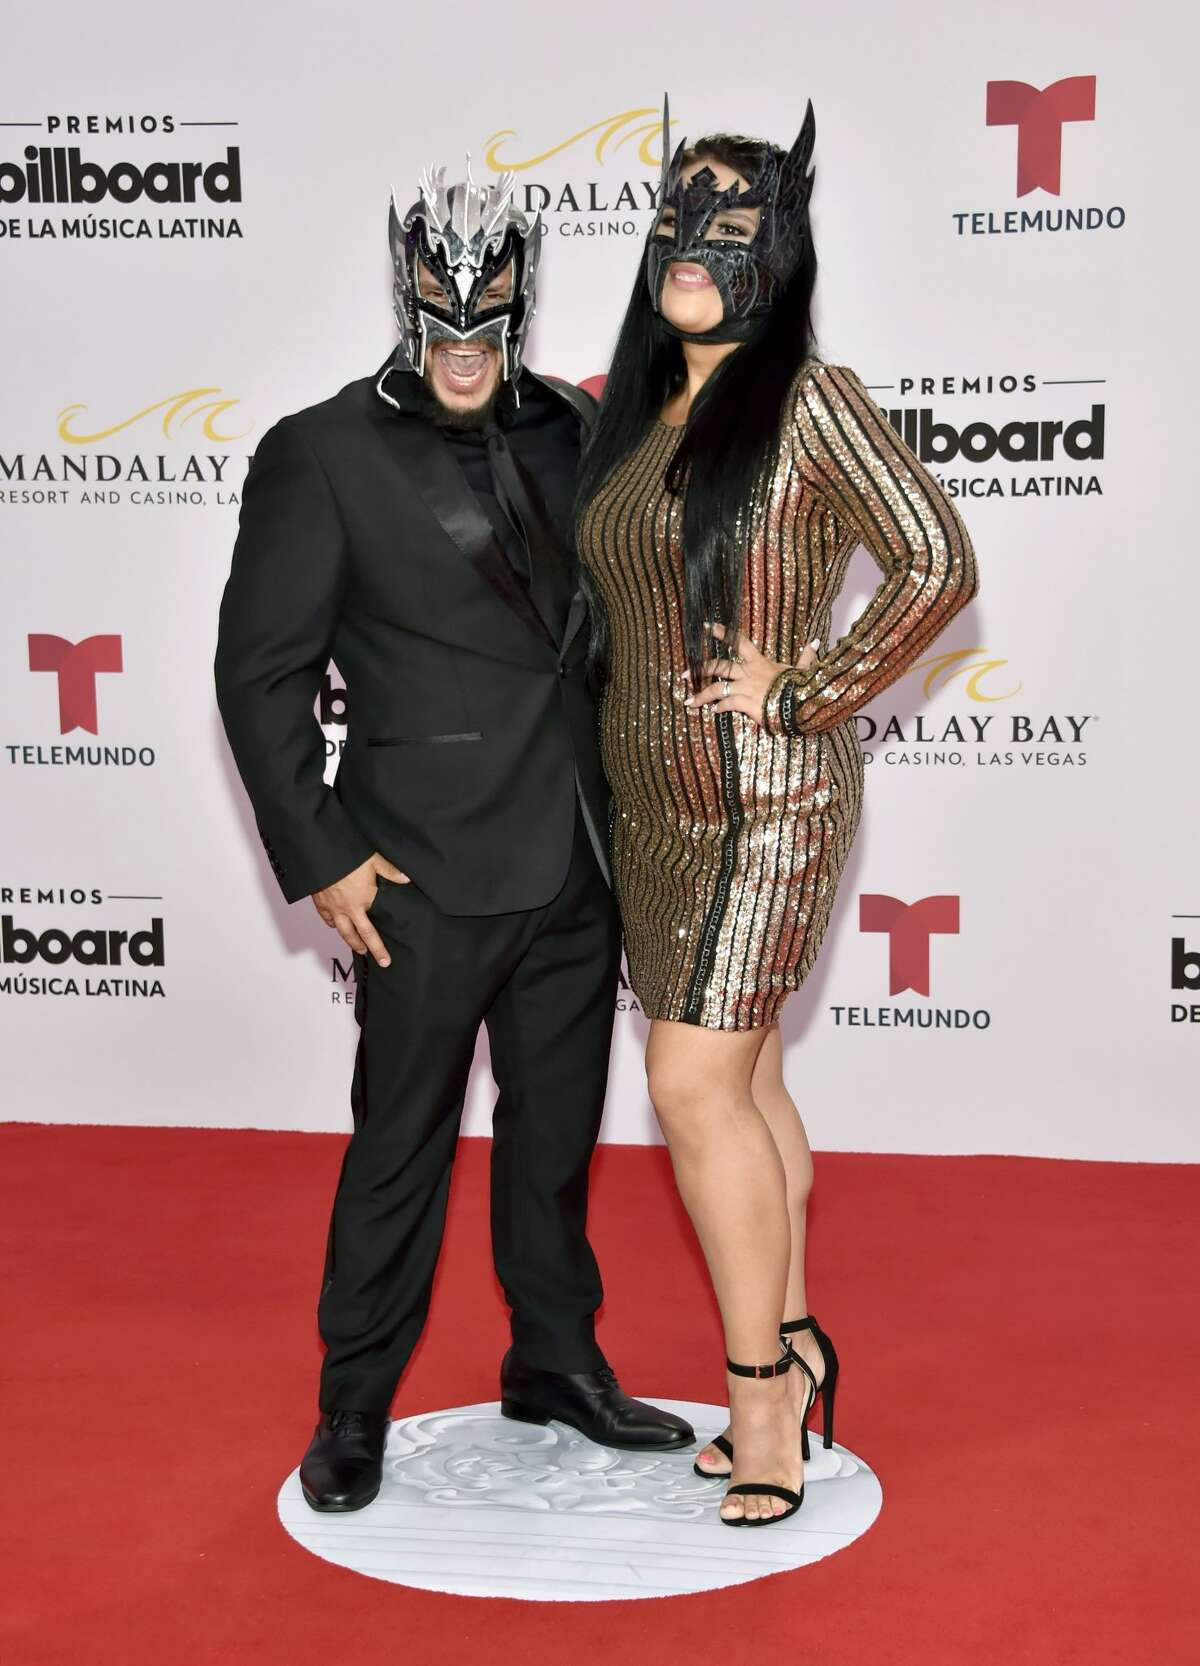 Kalisto attends the 2019 Billboard Latin Music Awards at the Mandalay Bay Events Center on April 25, 2019 in Las Vegas, Nevada. (Photo by David Becker/Getty Images)